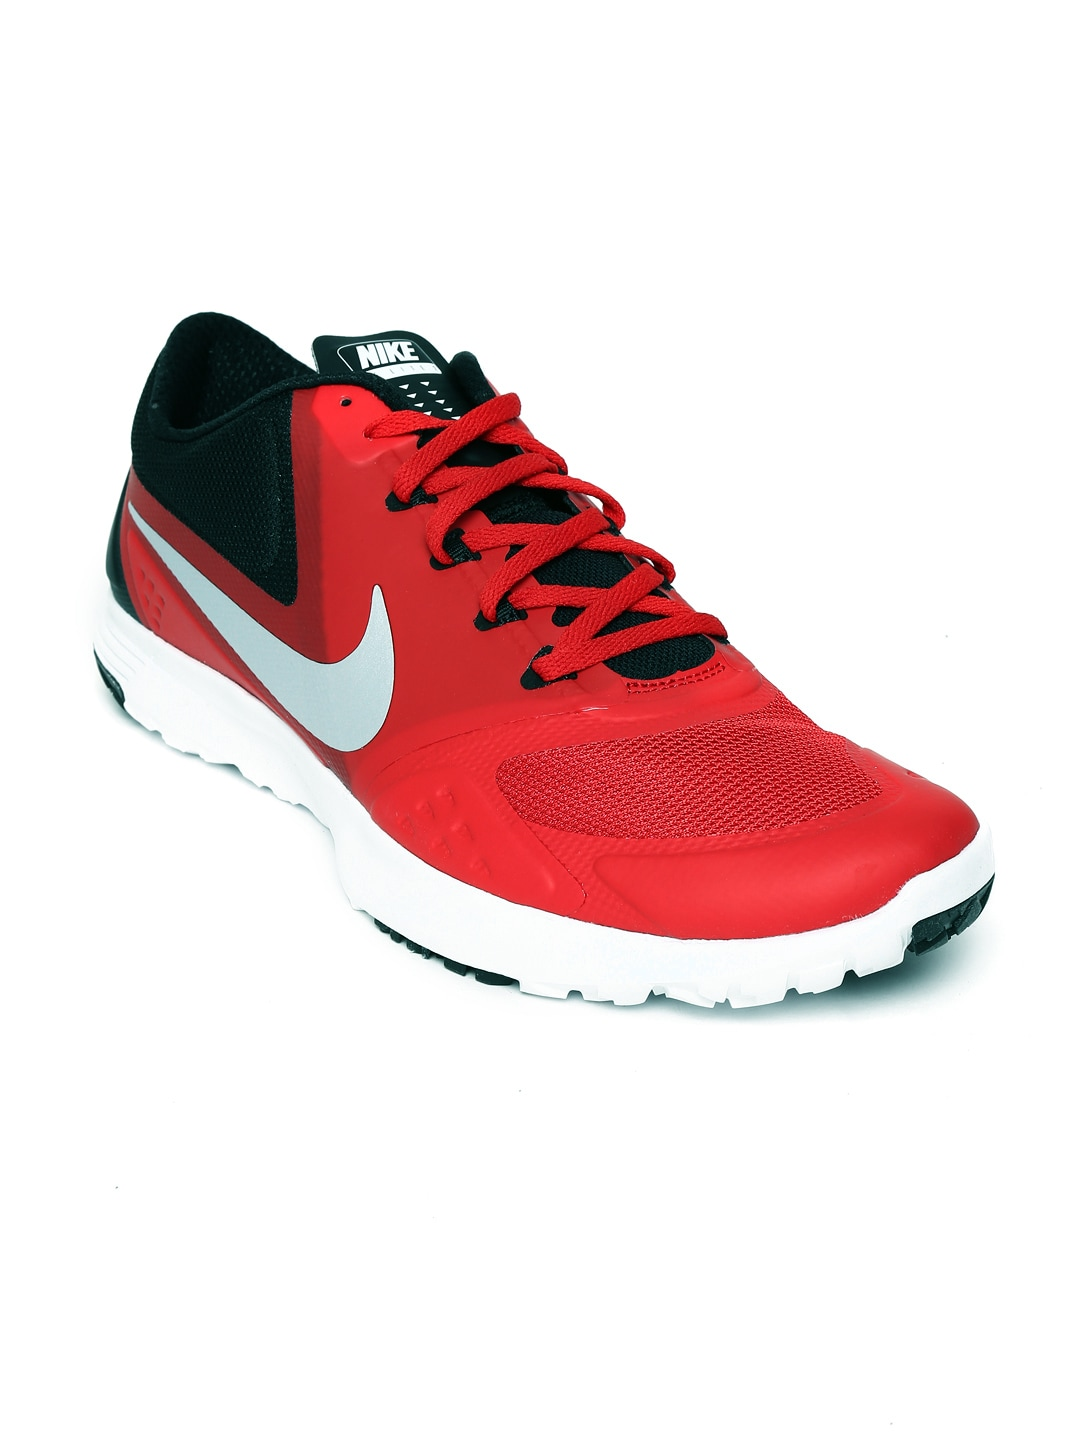 bfe43592 Nike 683141-600 Men Red Black Fs Lite Trainer Ii Training Shoes- Price in  India